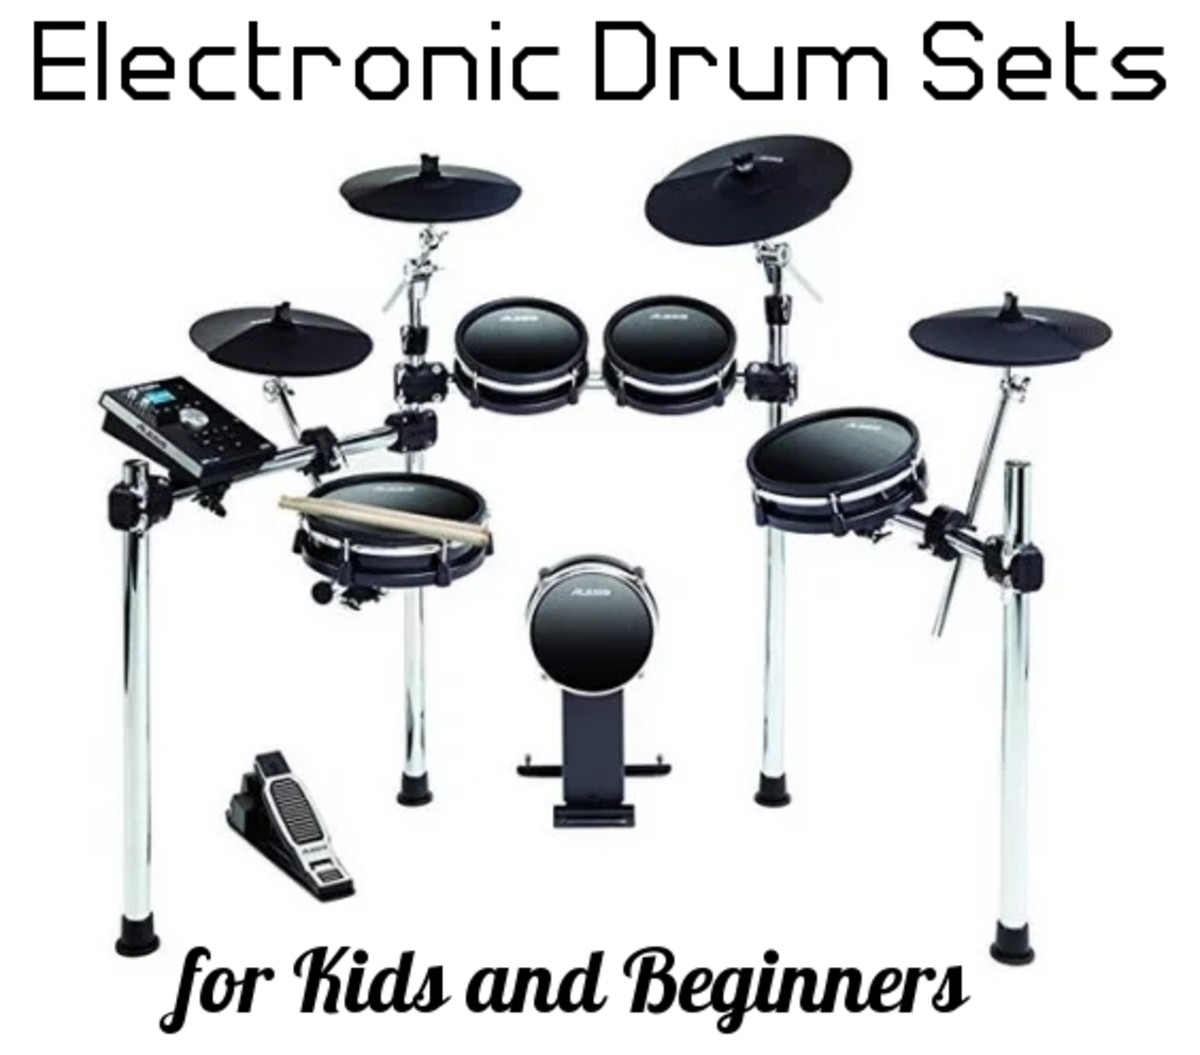 Alesis makes an affordable, pro-quality electronic drum set that I have used with my students